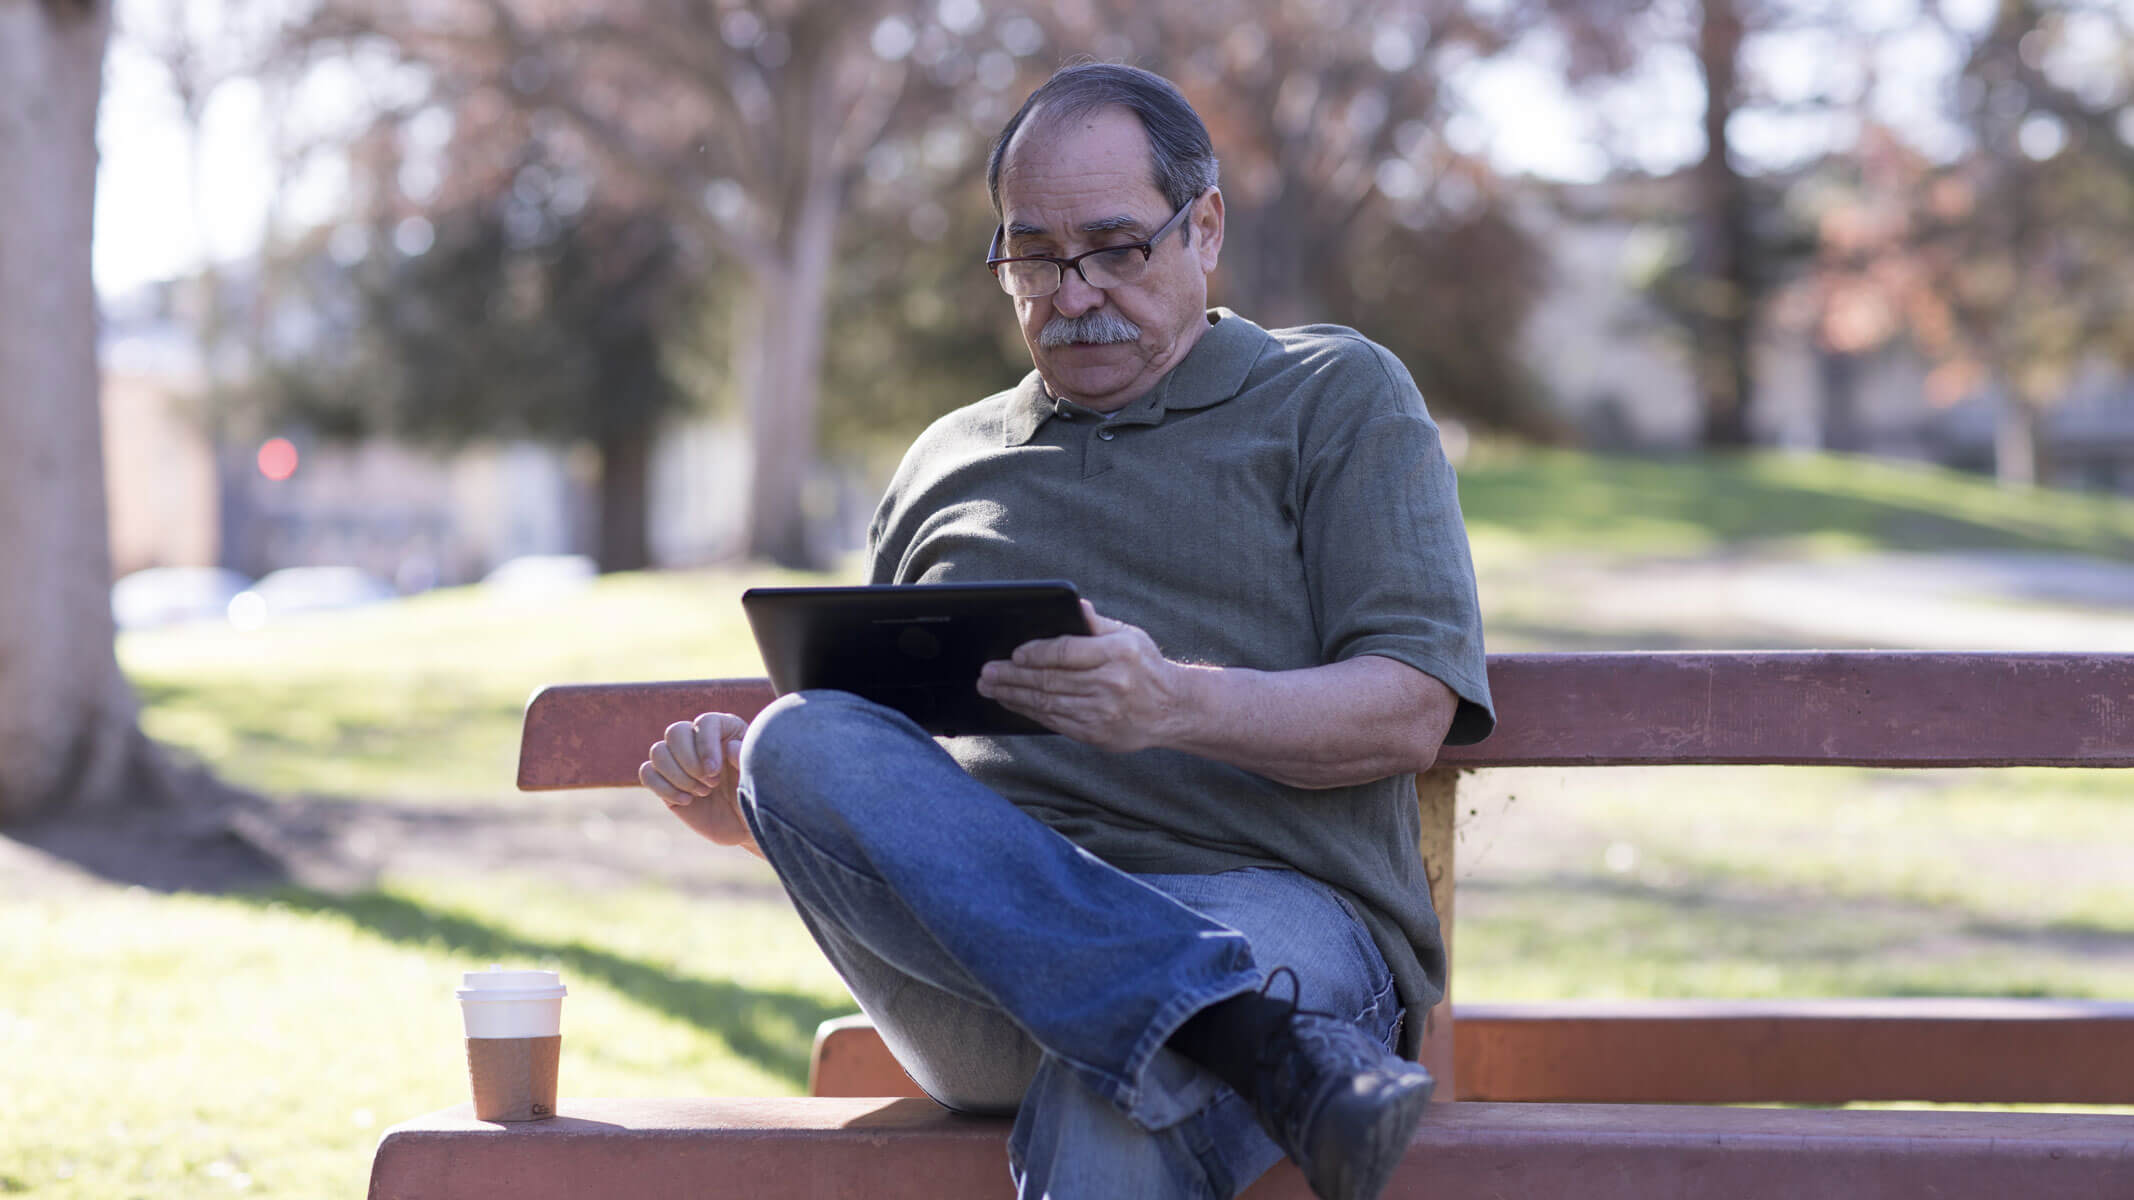 An older man sits on a park bench reading from a tablet.